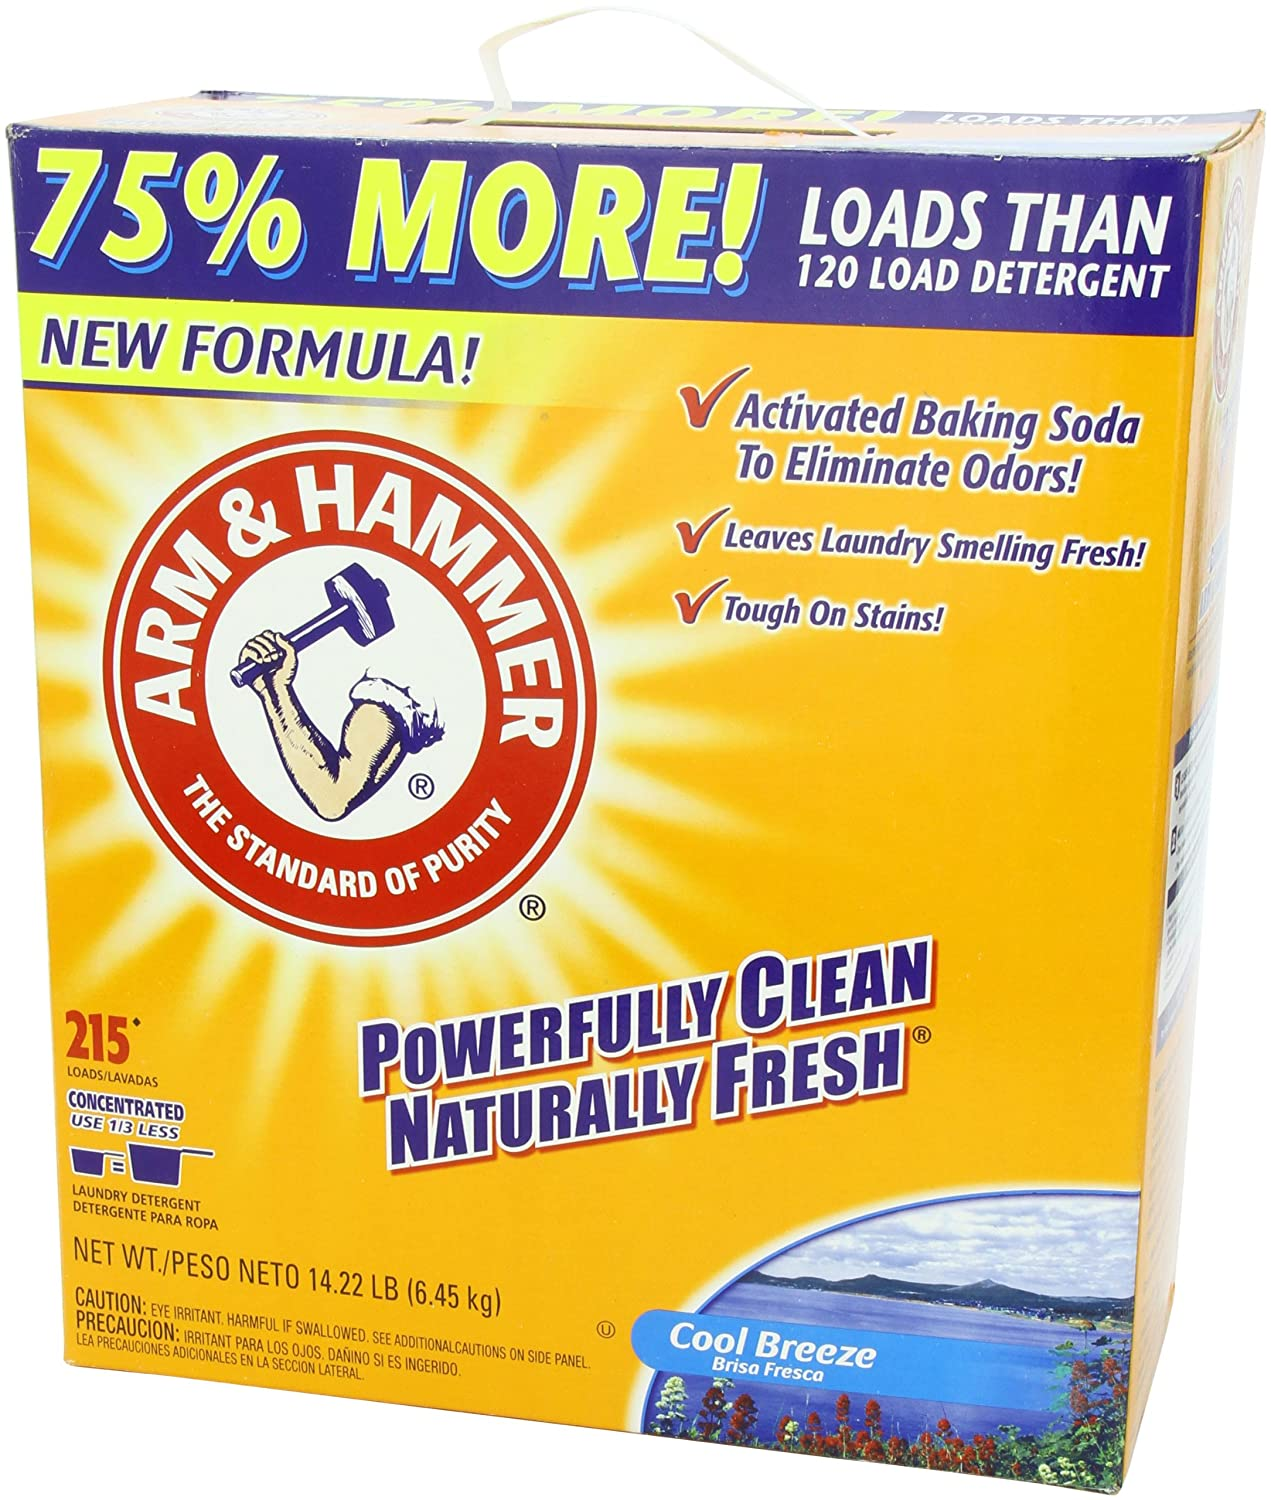 Is arm and hammer powder laundry detergent he - Amazon Com Arm Hammer Laundry Detergent Cool Breeze 14 22 Lbs Health Personal Care